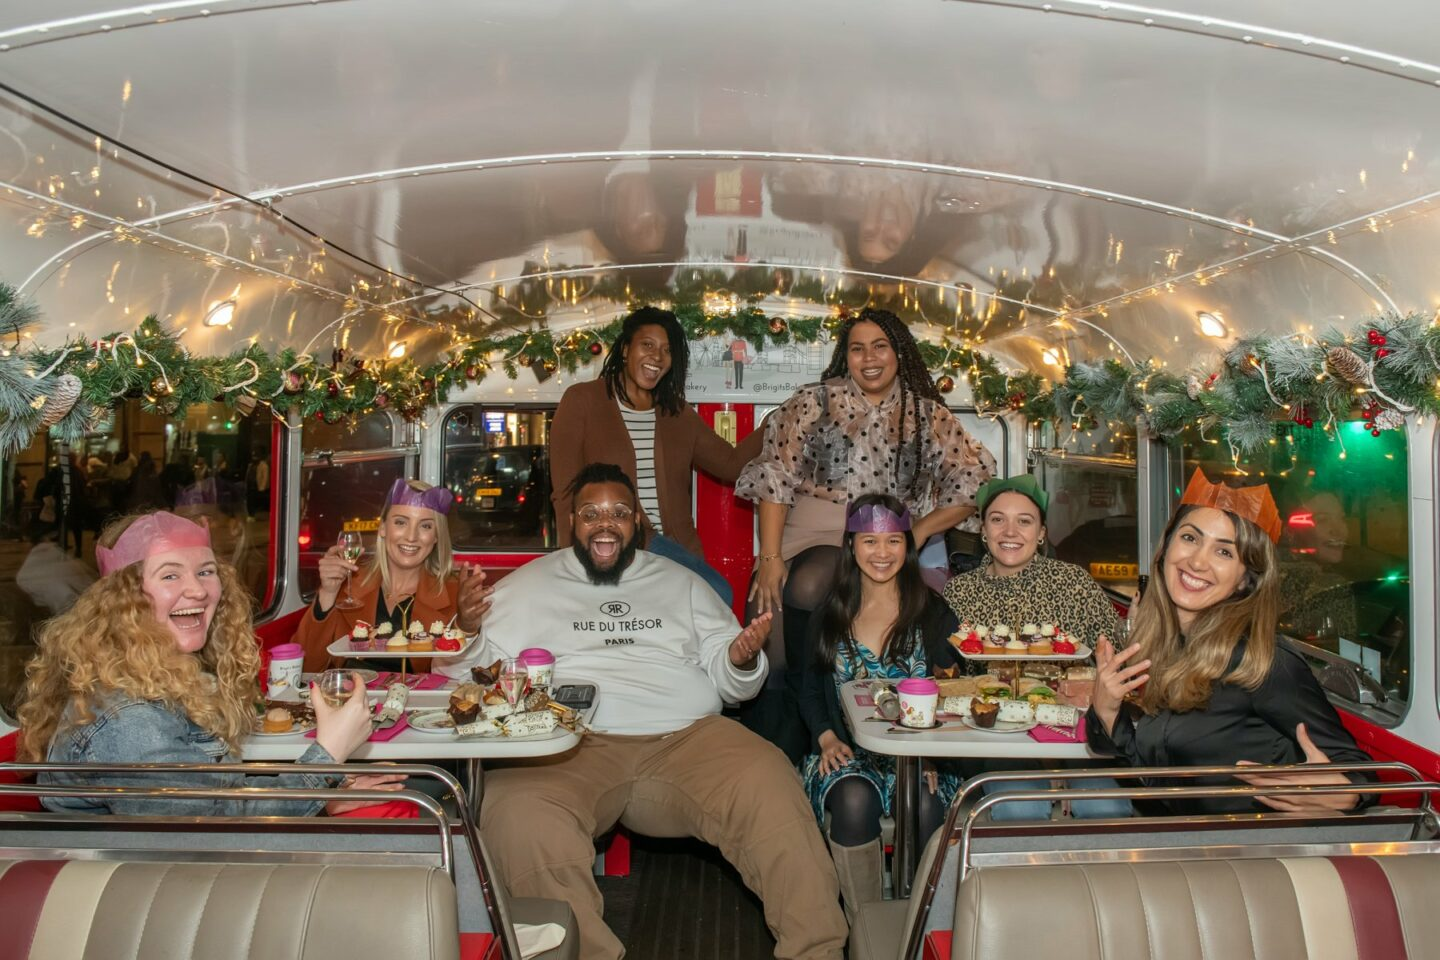 Sophie and a number of bloggers sat together inside the afternoon tea bus